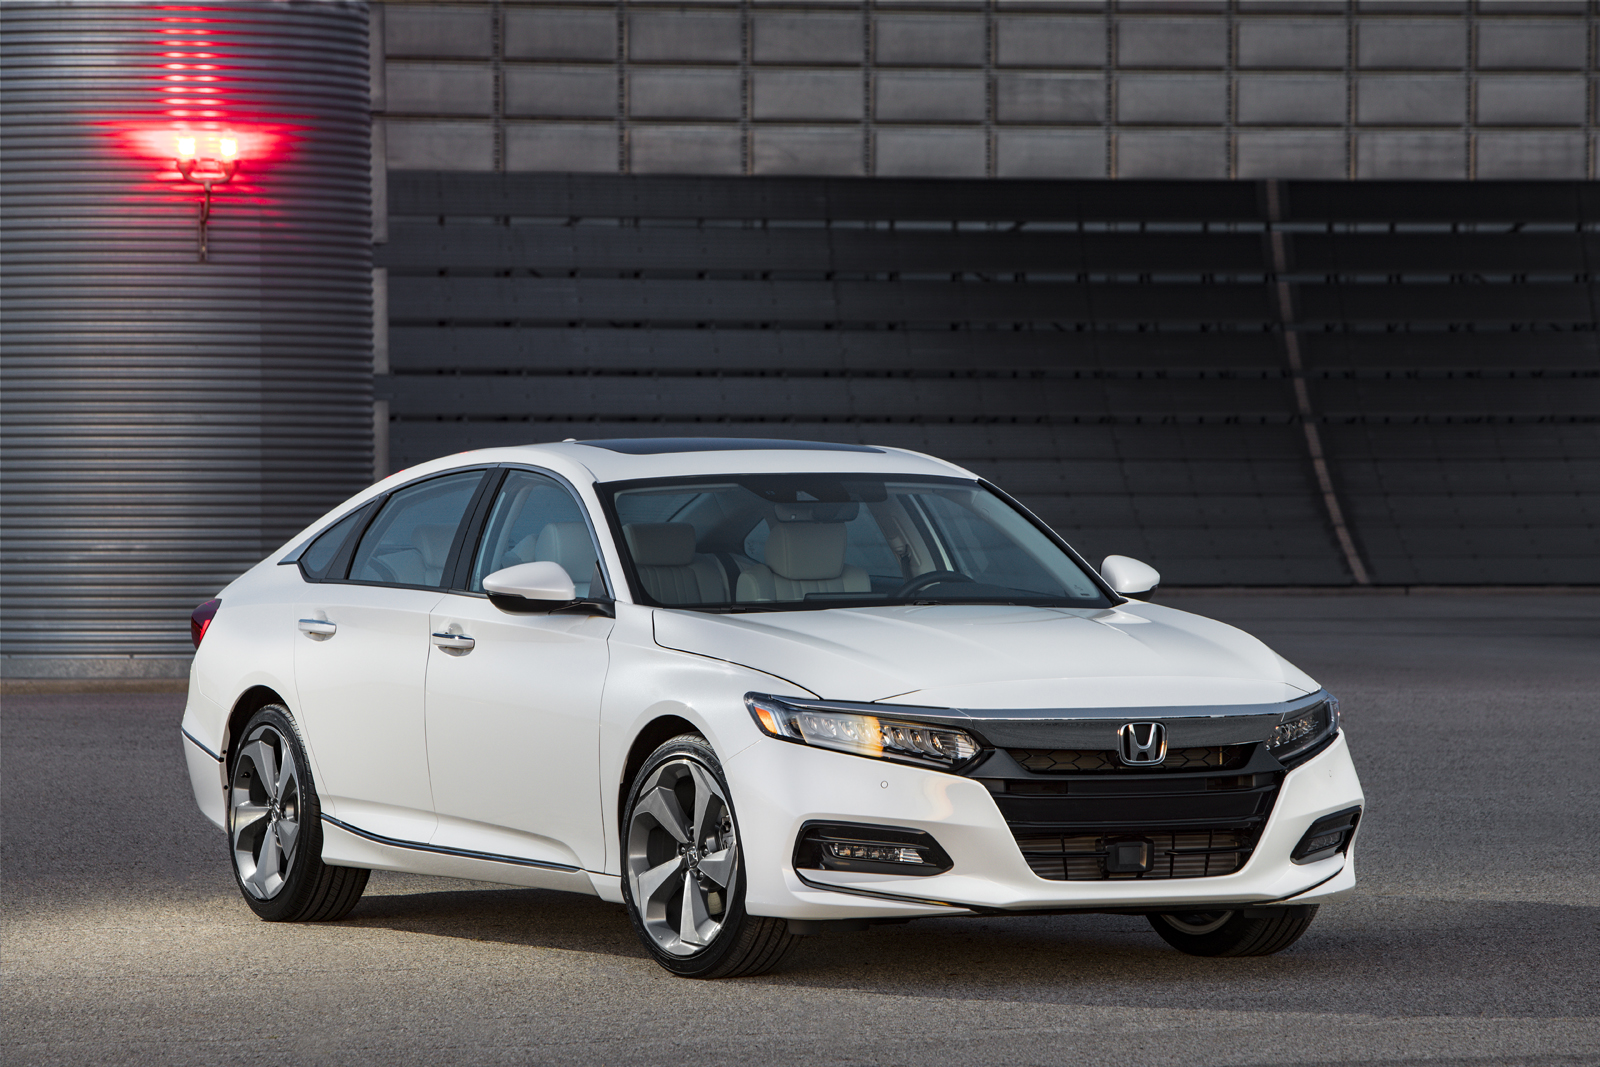 2018 Honda Accord Pricing And Fuel Economy Announced